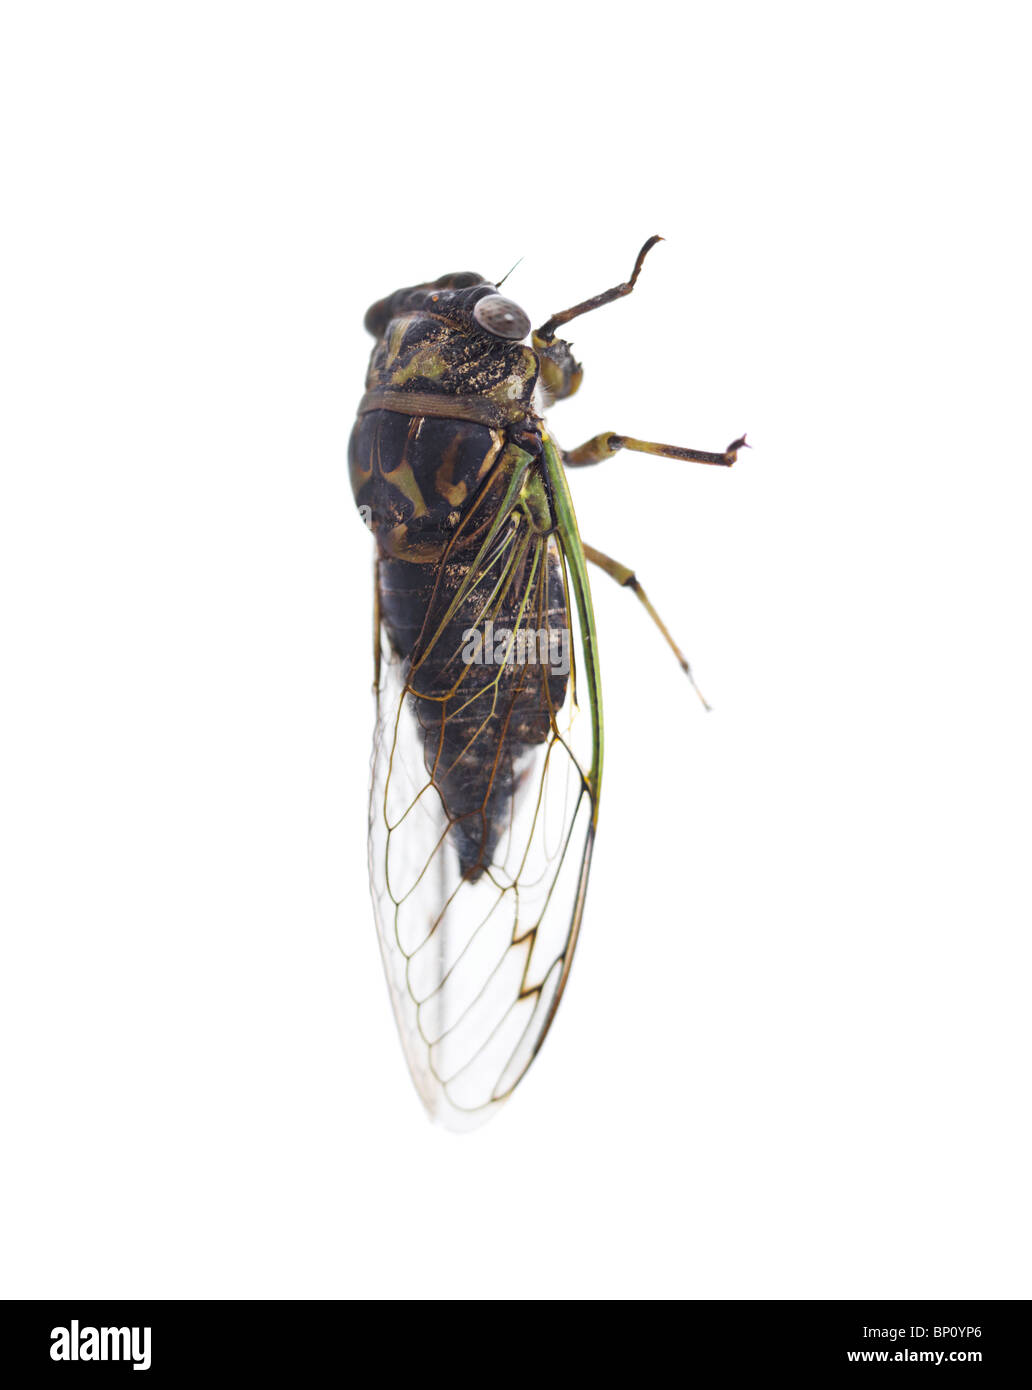 Annual Cicada - Tibicen canicularis isolated on white background. Ontario, Canada. - Stock Image